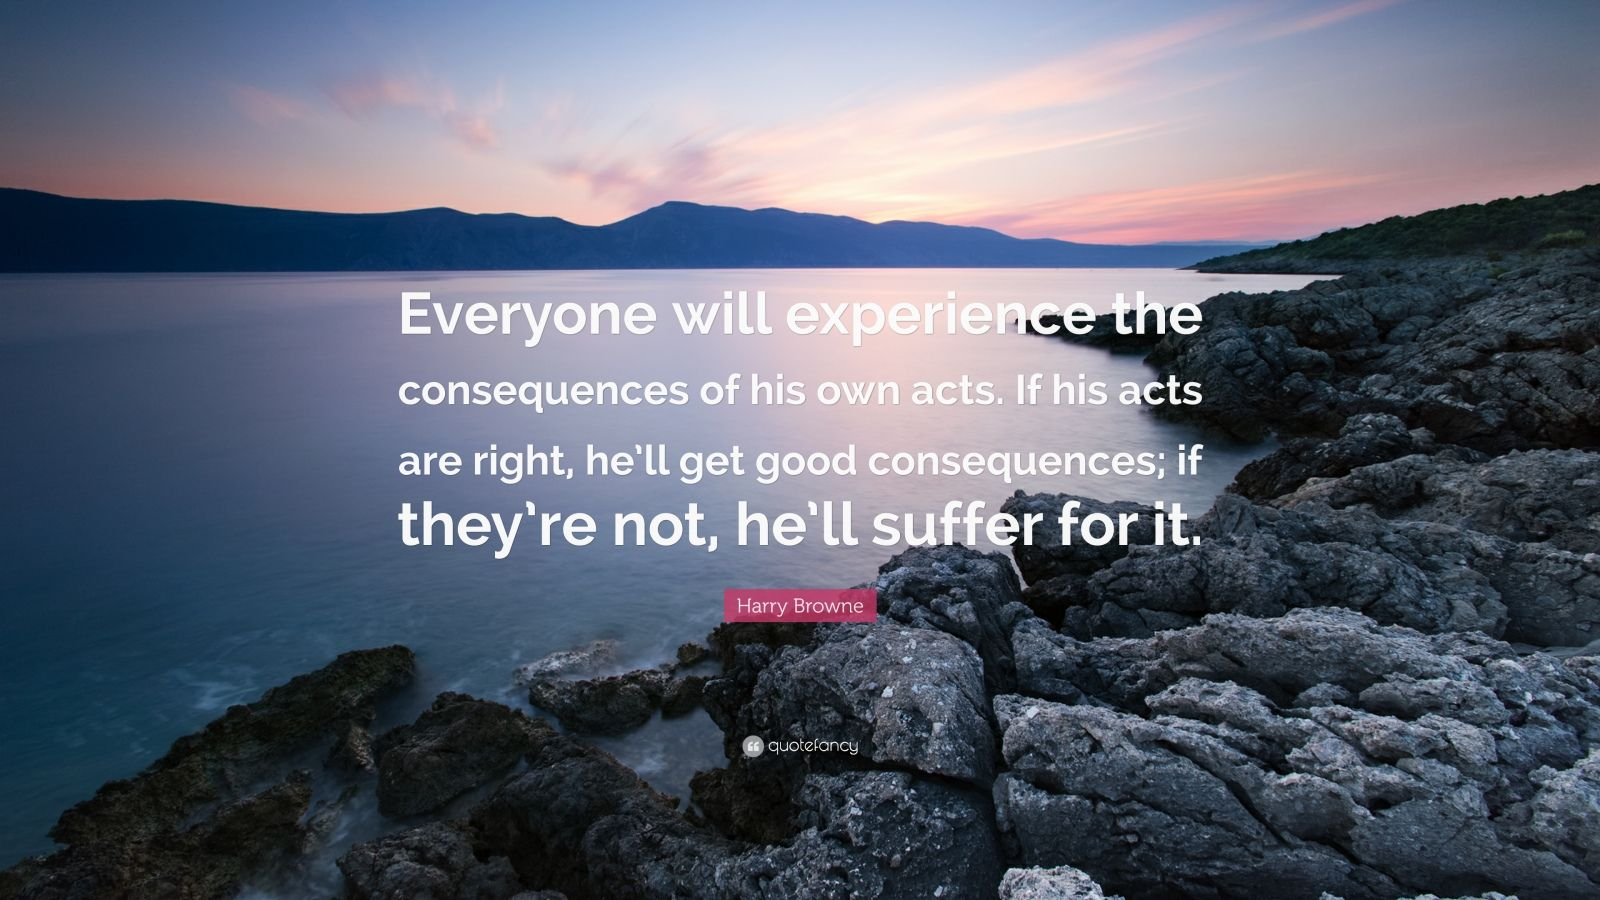 """Harry Browne Quote: """"Everyone will experience the consequences of his own acts. If his acts are right, he'll get good consequences; if they're not, he'll suffer for it."""""""